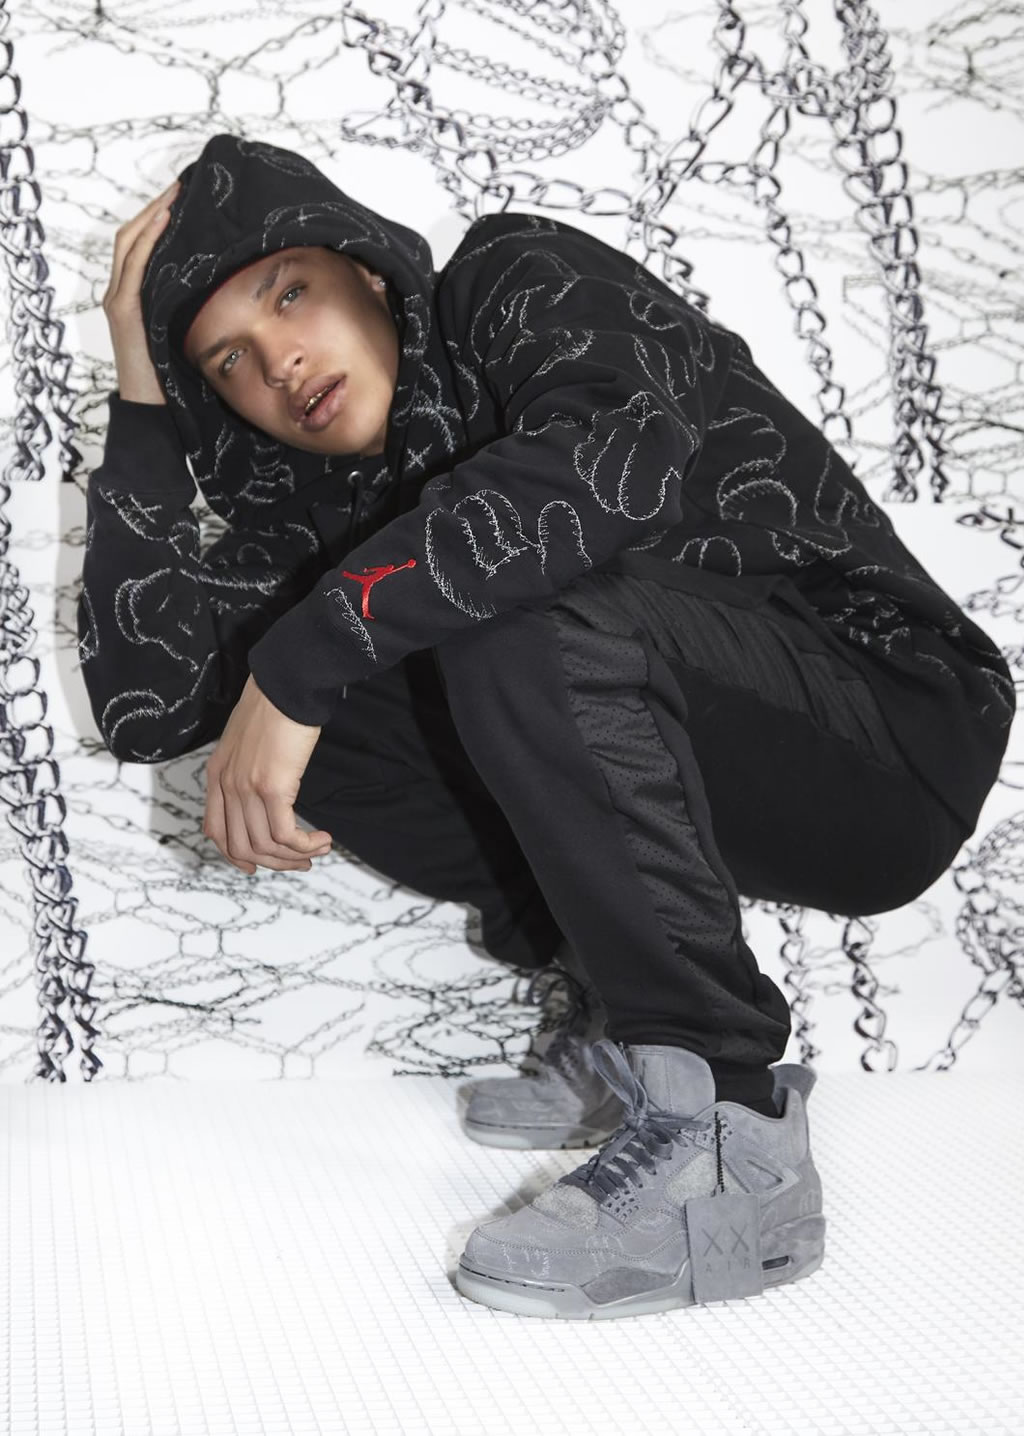 Capsule Collection By KAWS And Jordan, Black Hoodie